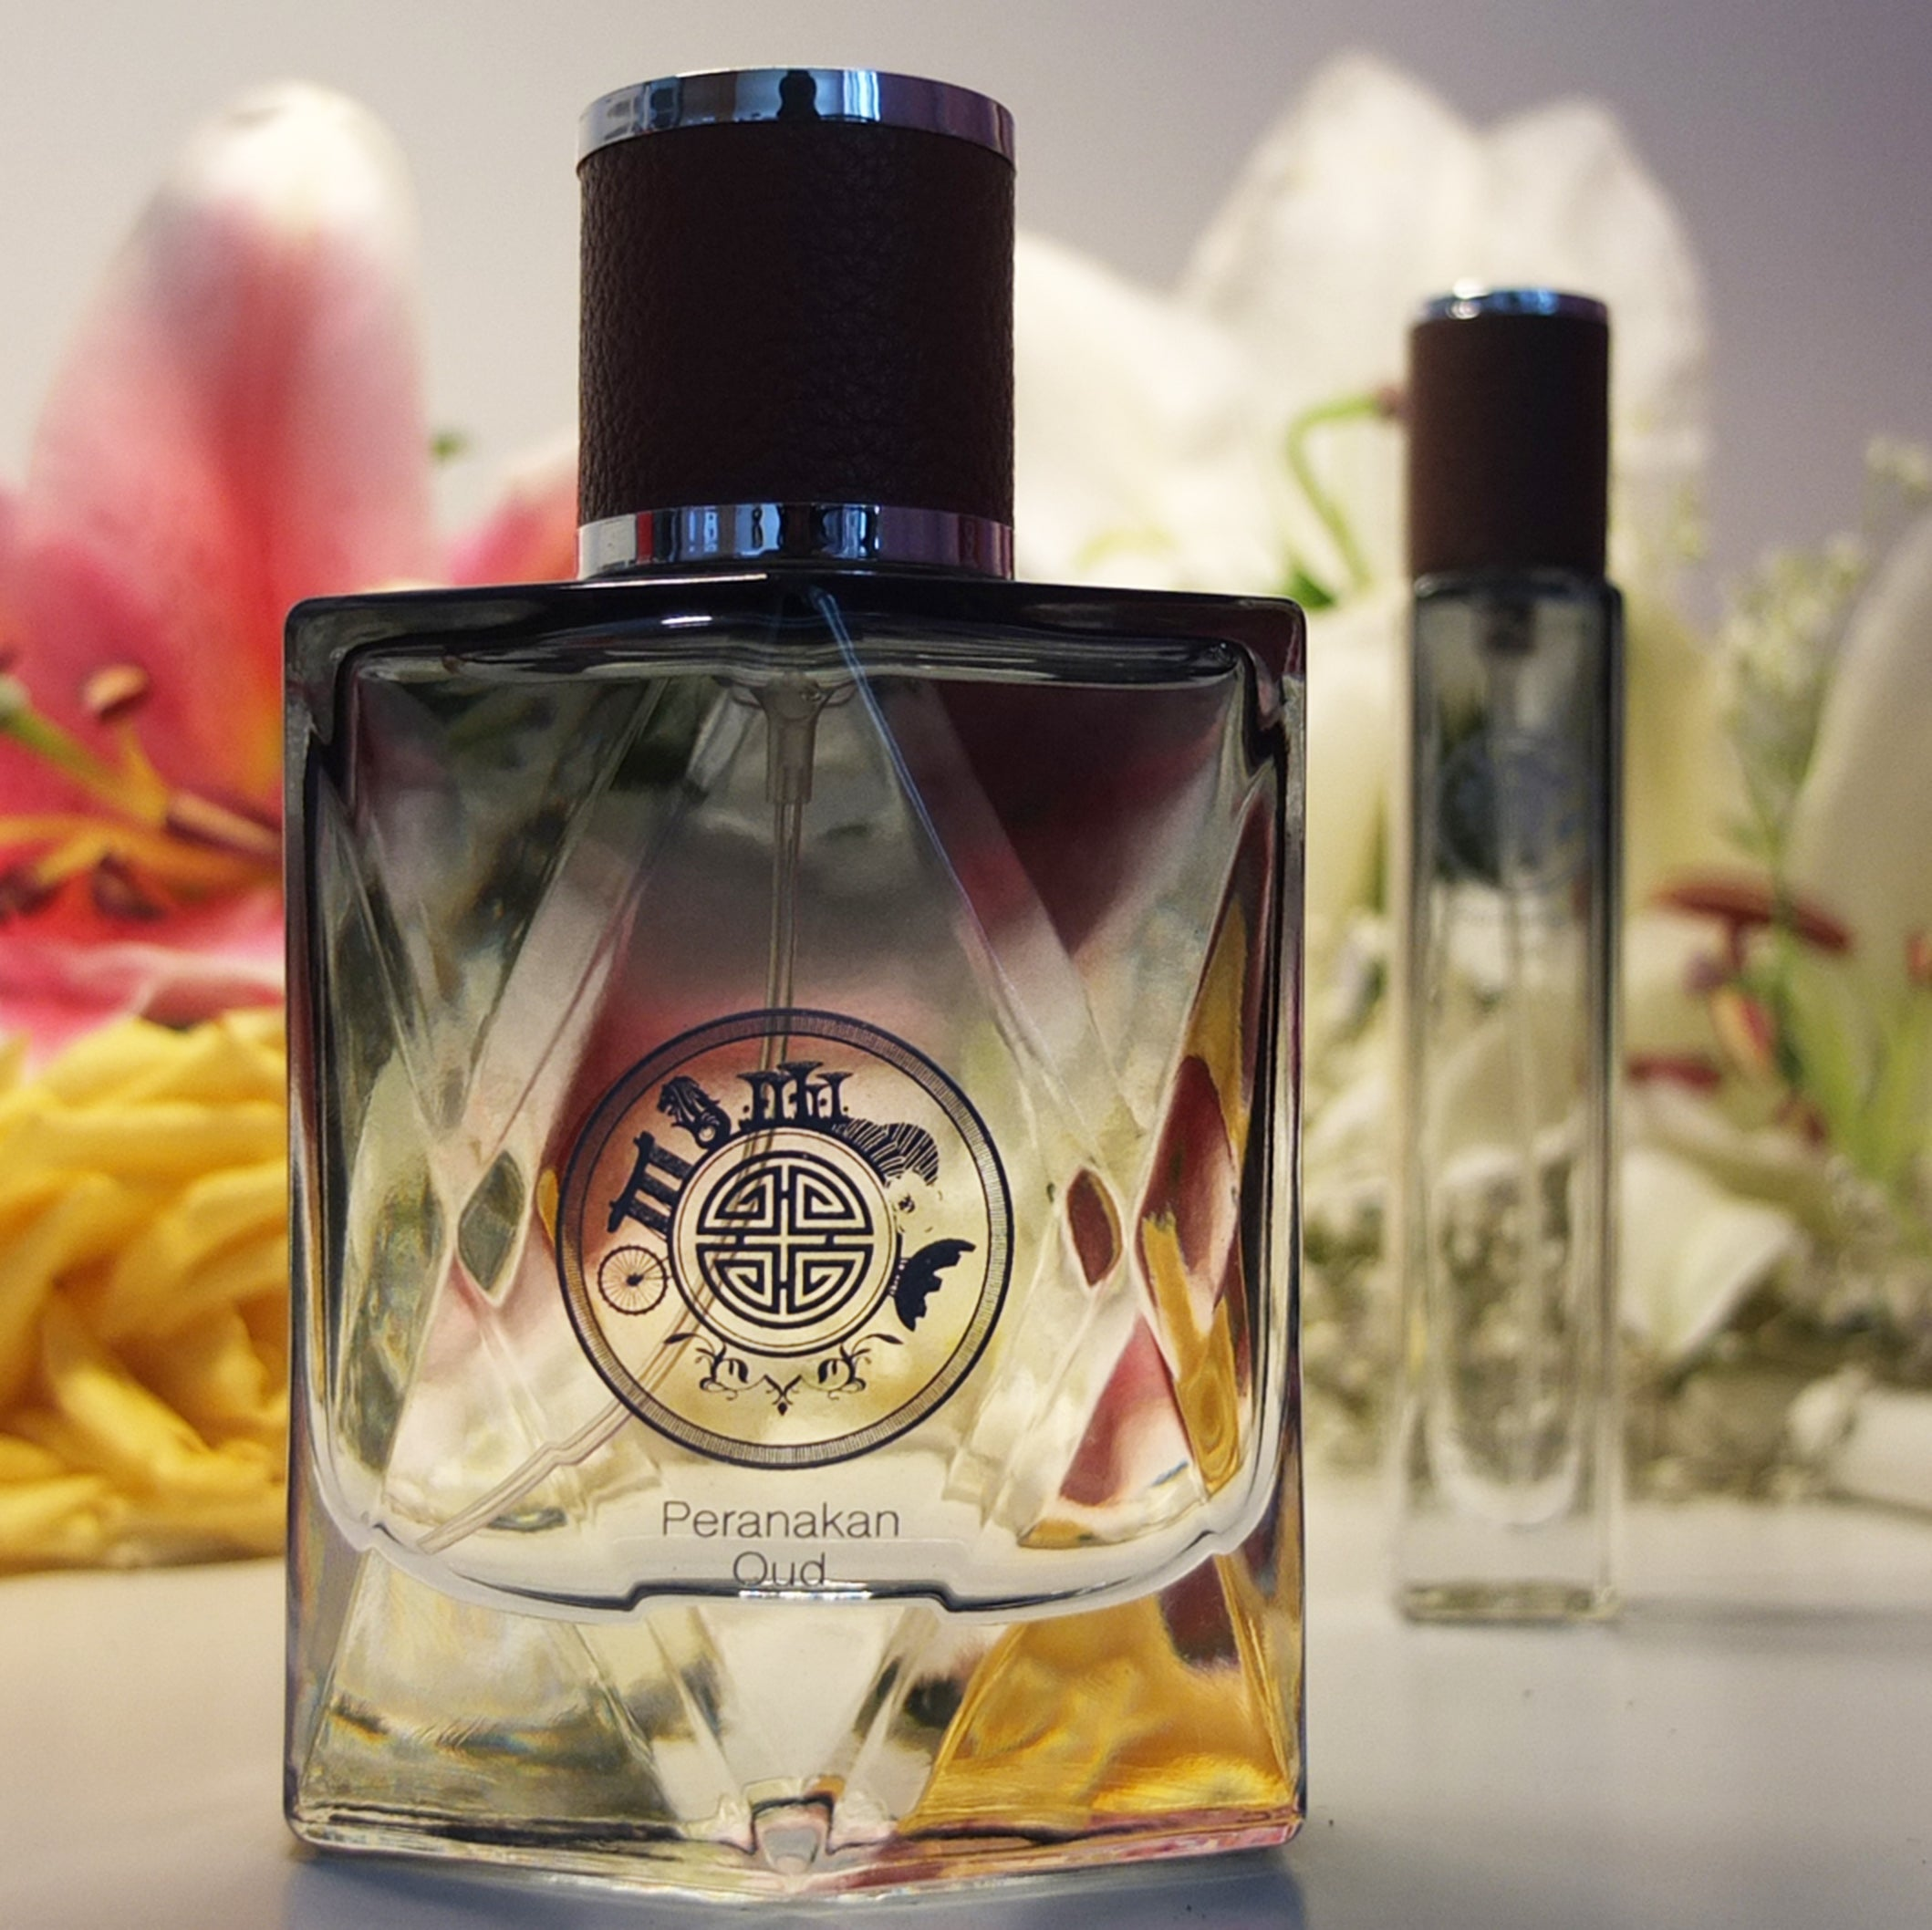 Online Perfume Collections Singapore : Singapore Memories brings Peranakan Oud, a perfect Orchids perfume for friends and family gifting